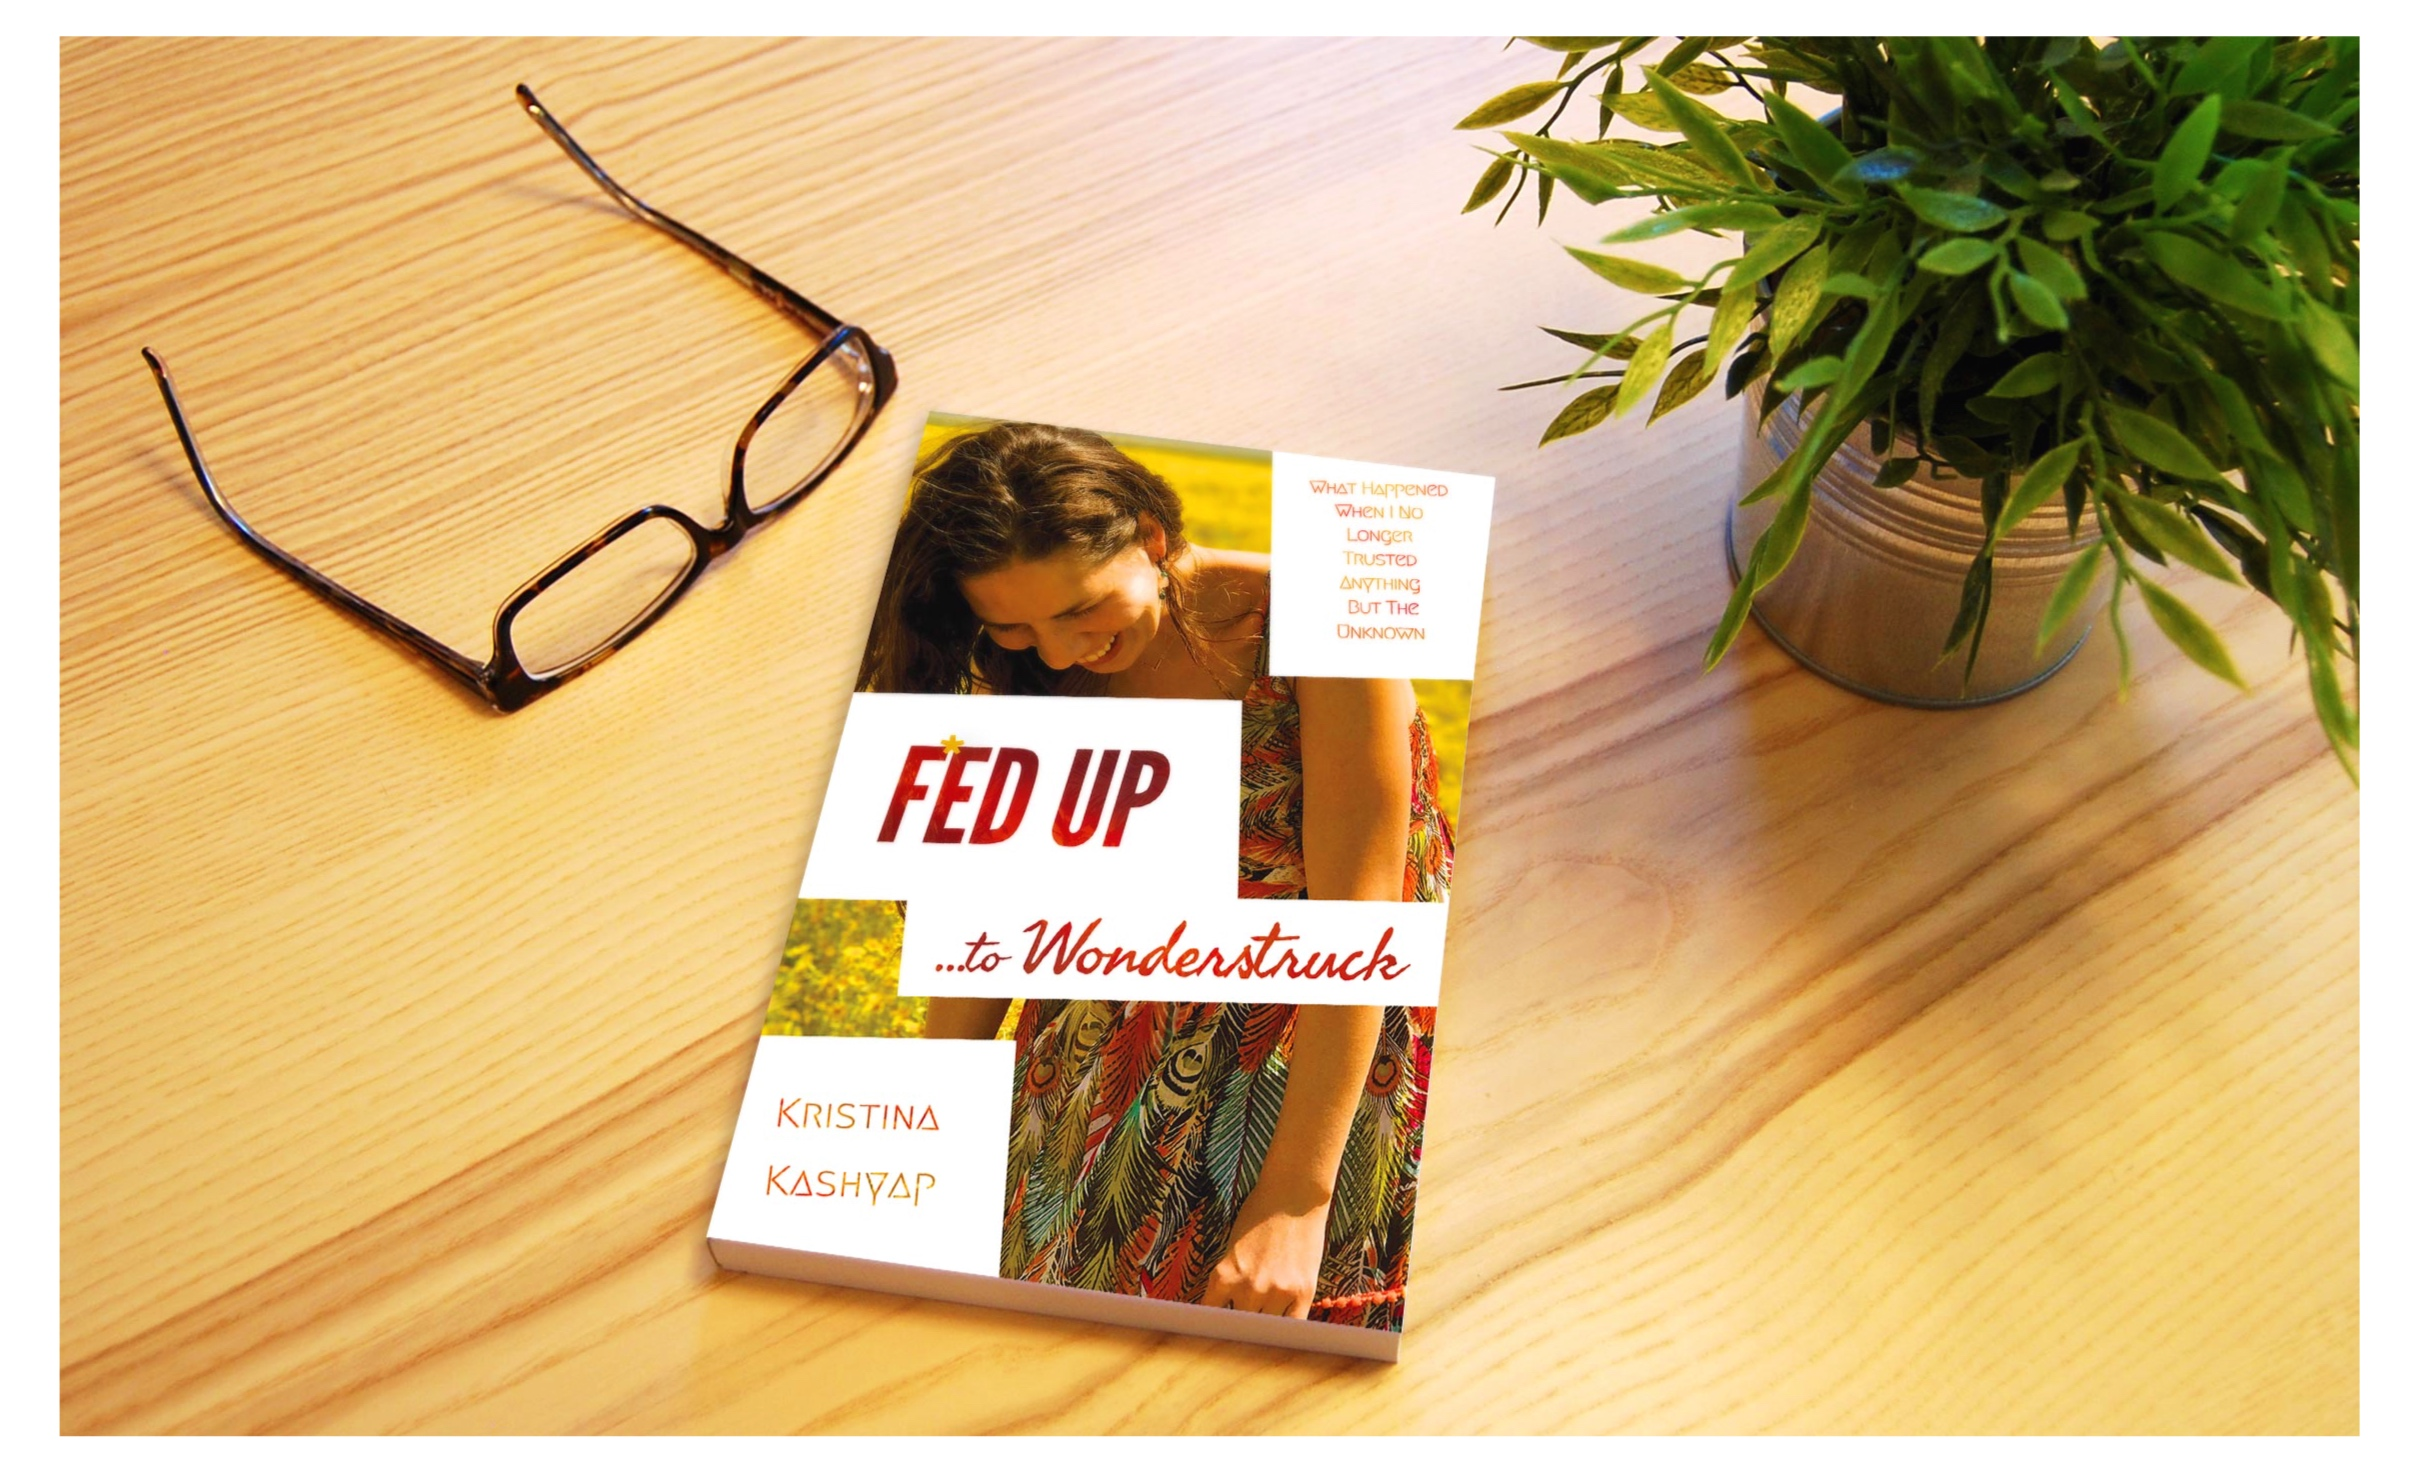 Get Kristina's New Book at Amazon - Check out the book website www.fedupwonderstruck.com